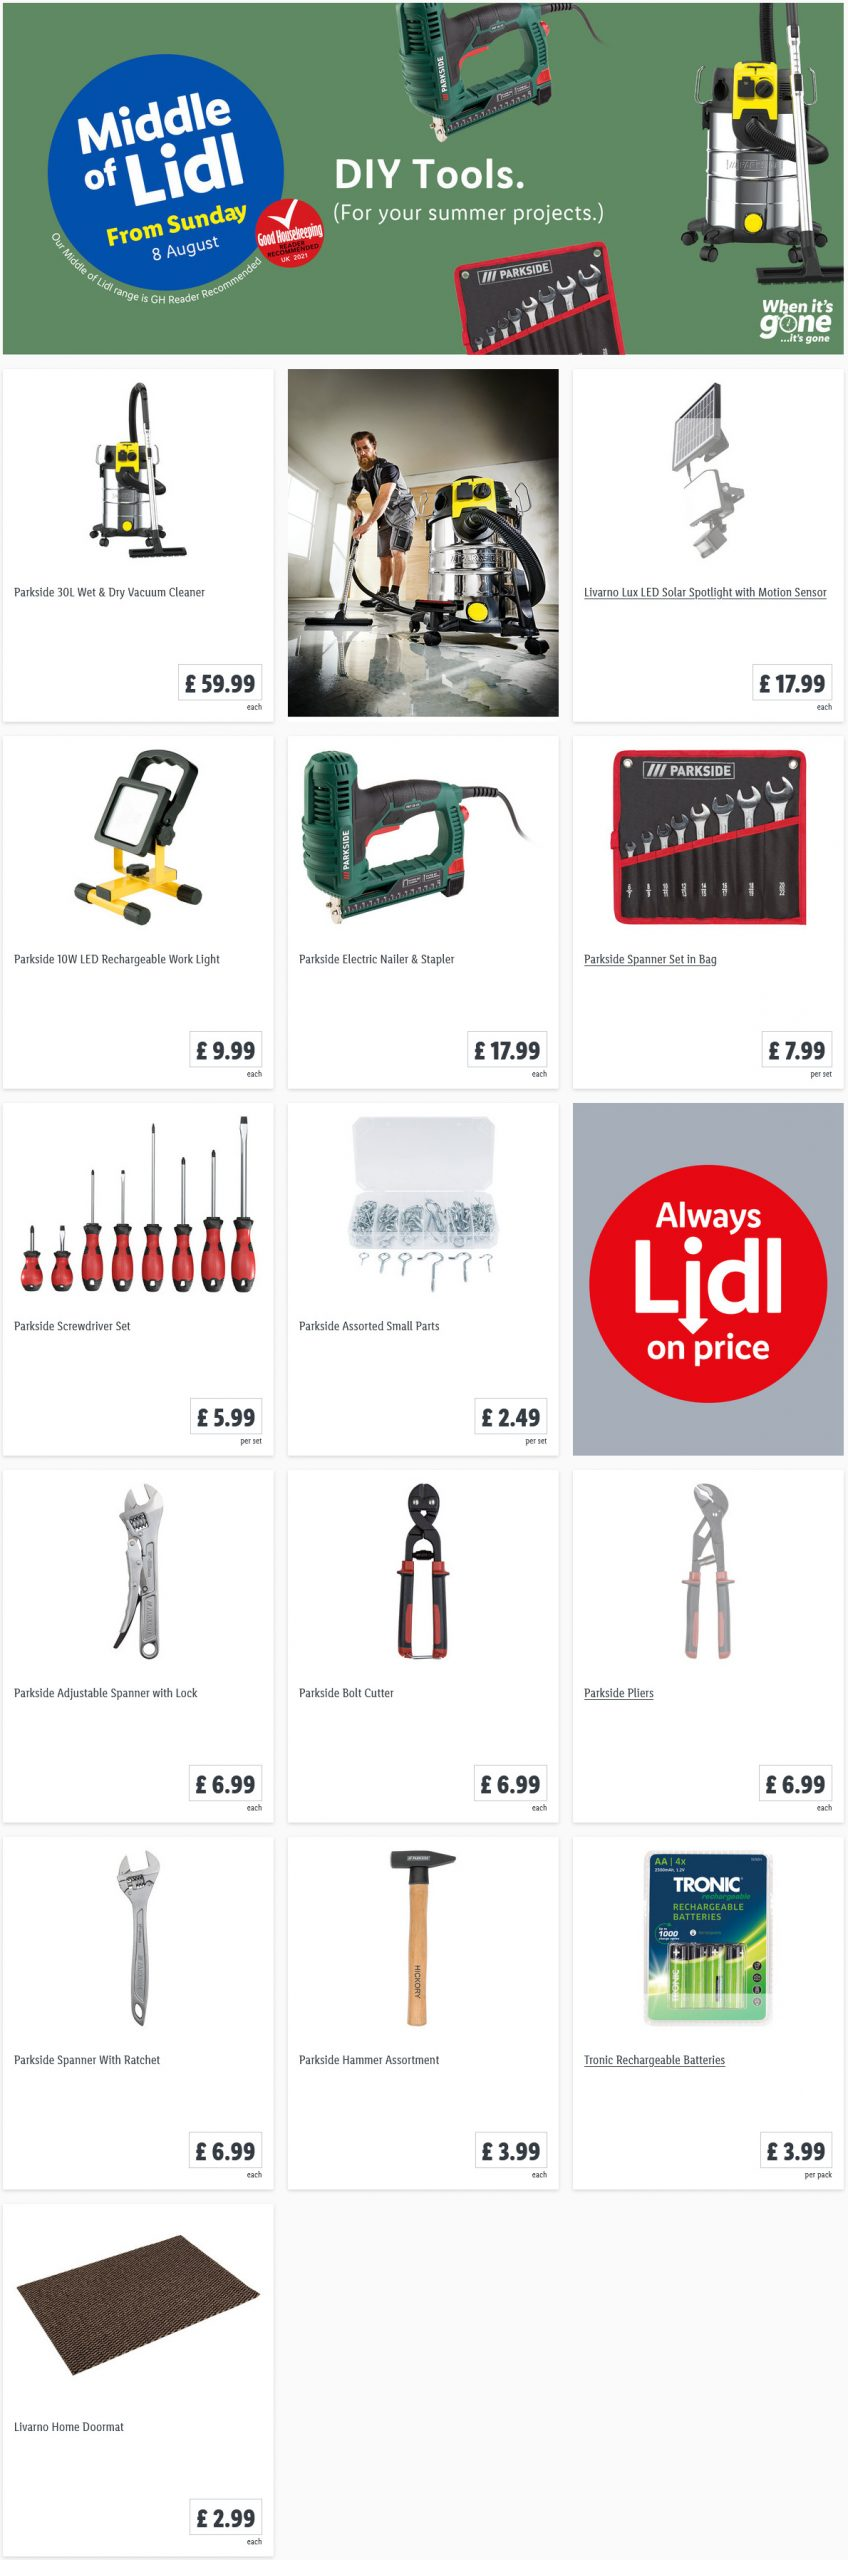 LIDL Sunday Offers DIY Tools from 8th August 2021